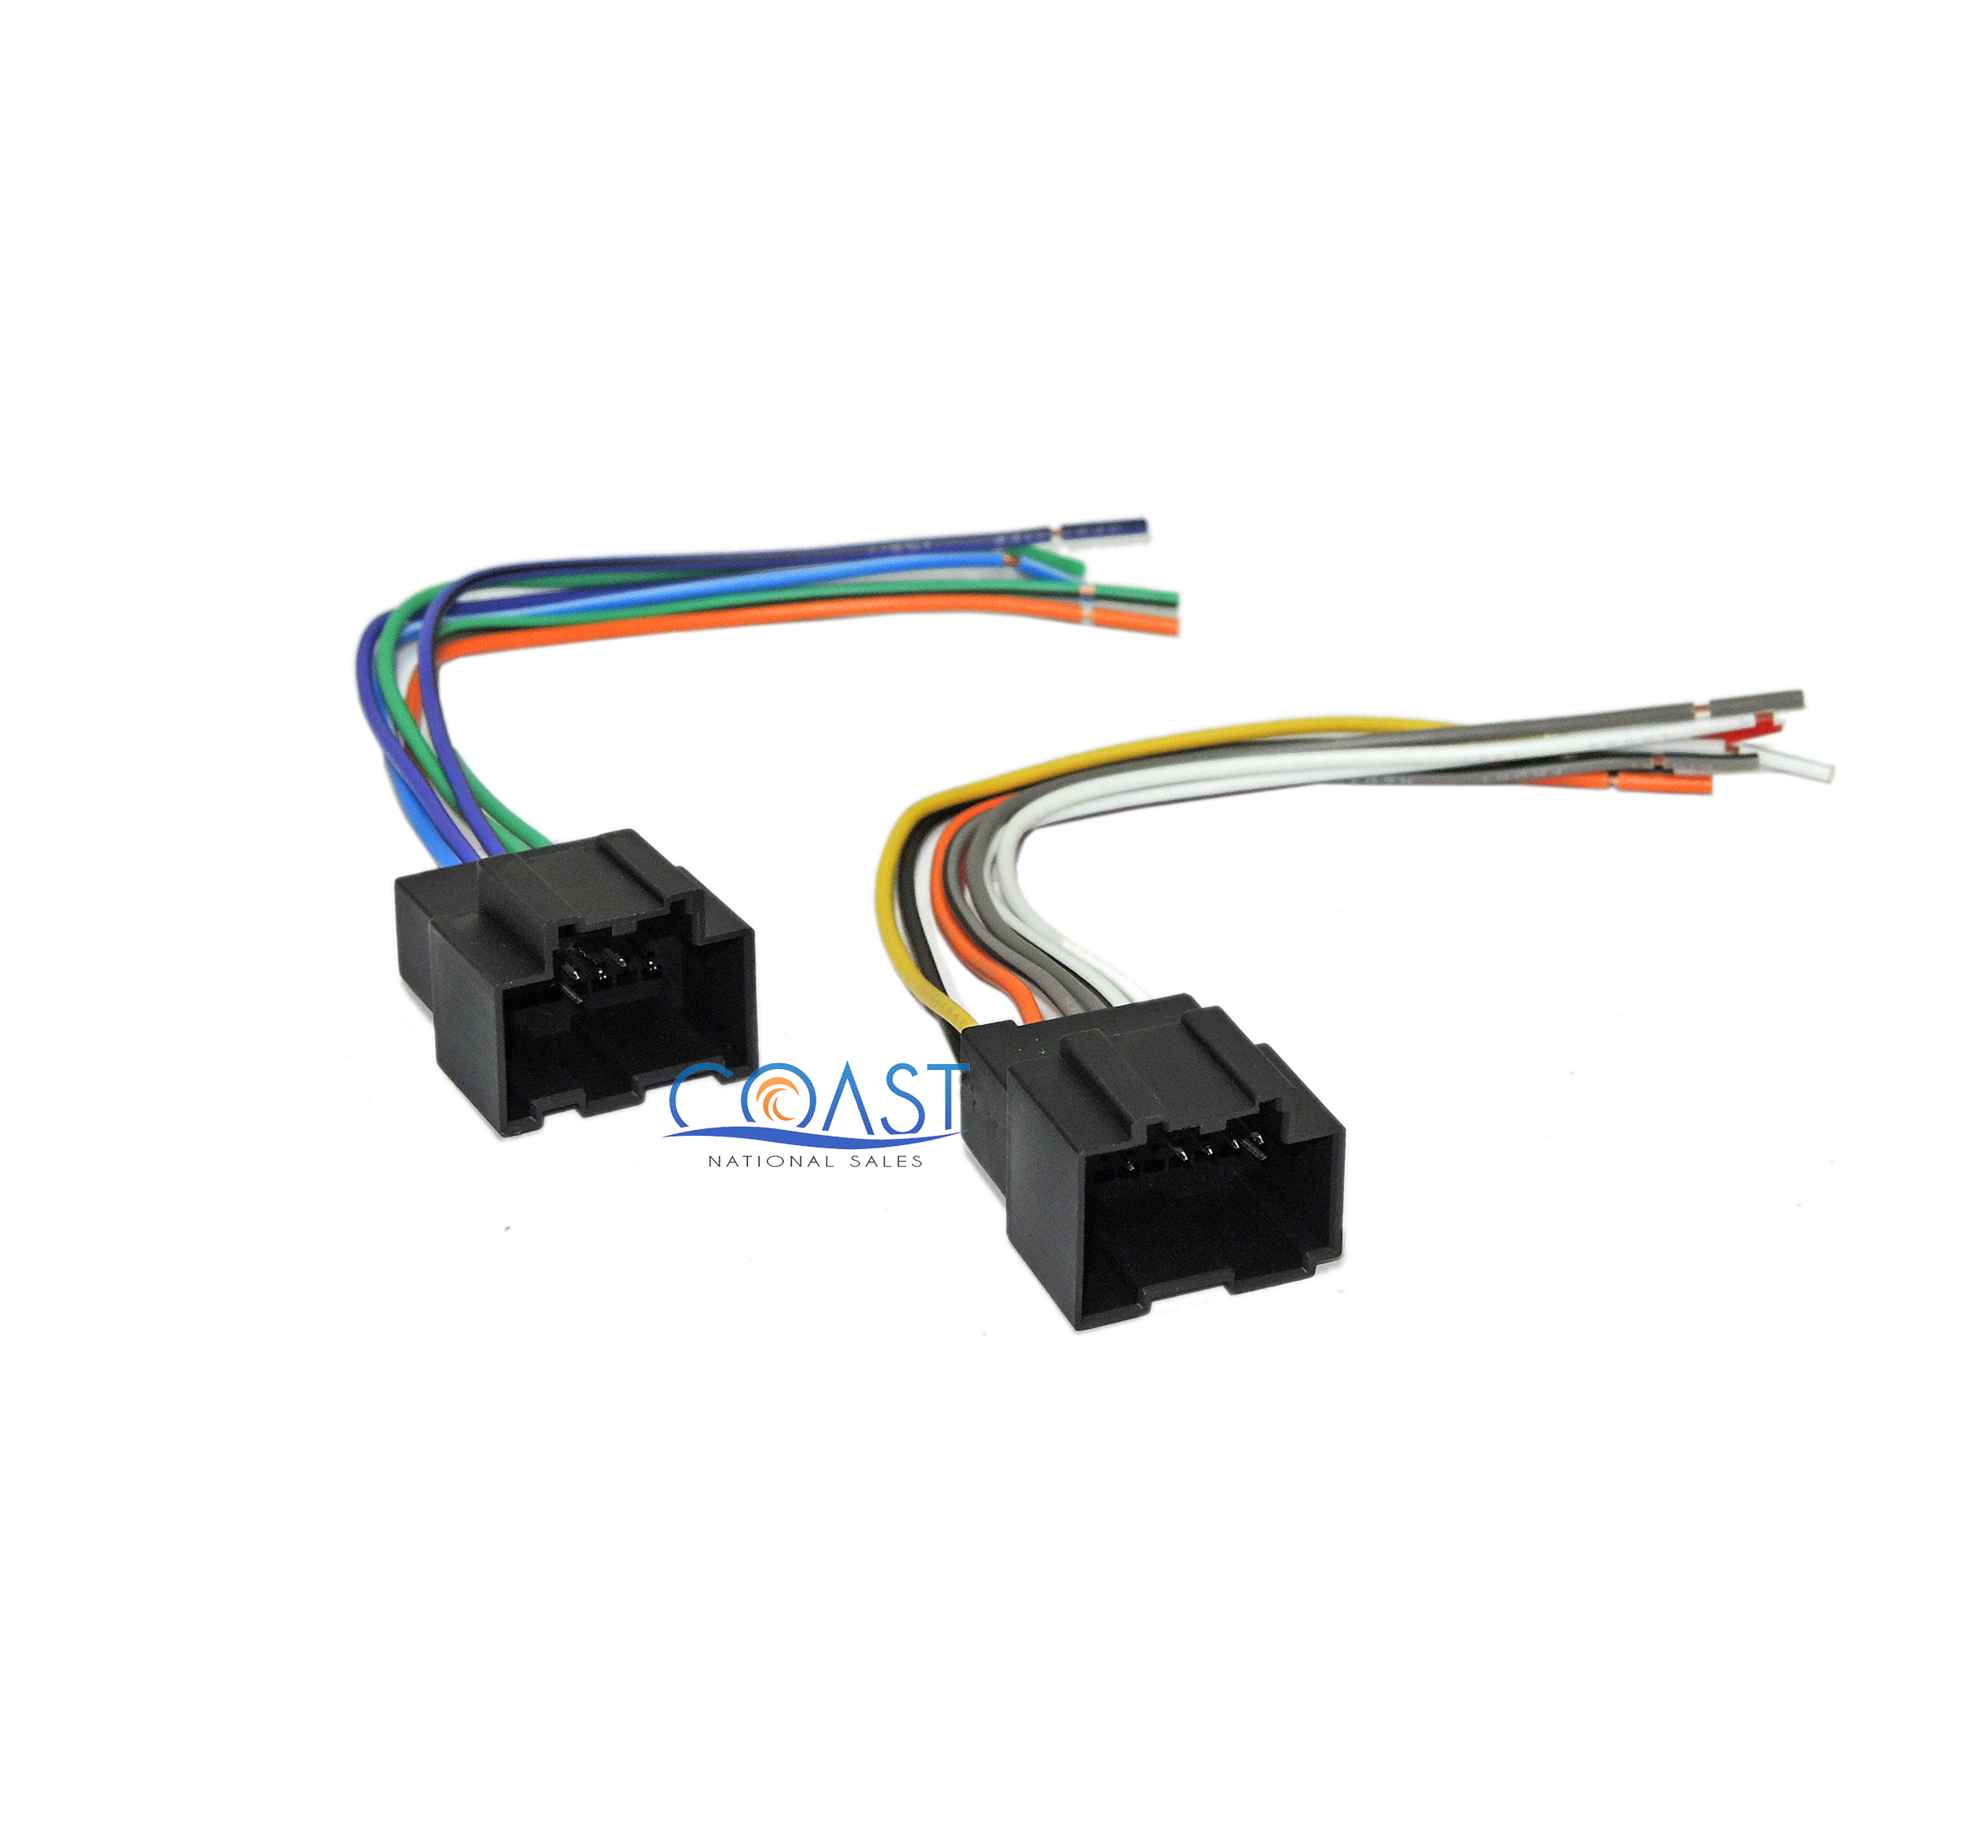 details about car stereo harness plugs into factory harness for 2006 2007 saturn  ion vuesaturn ion